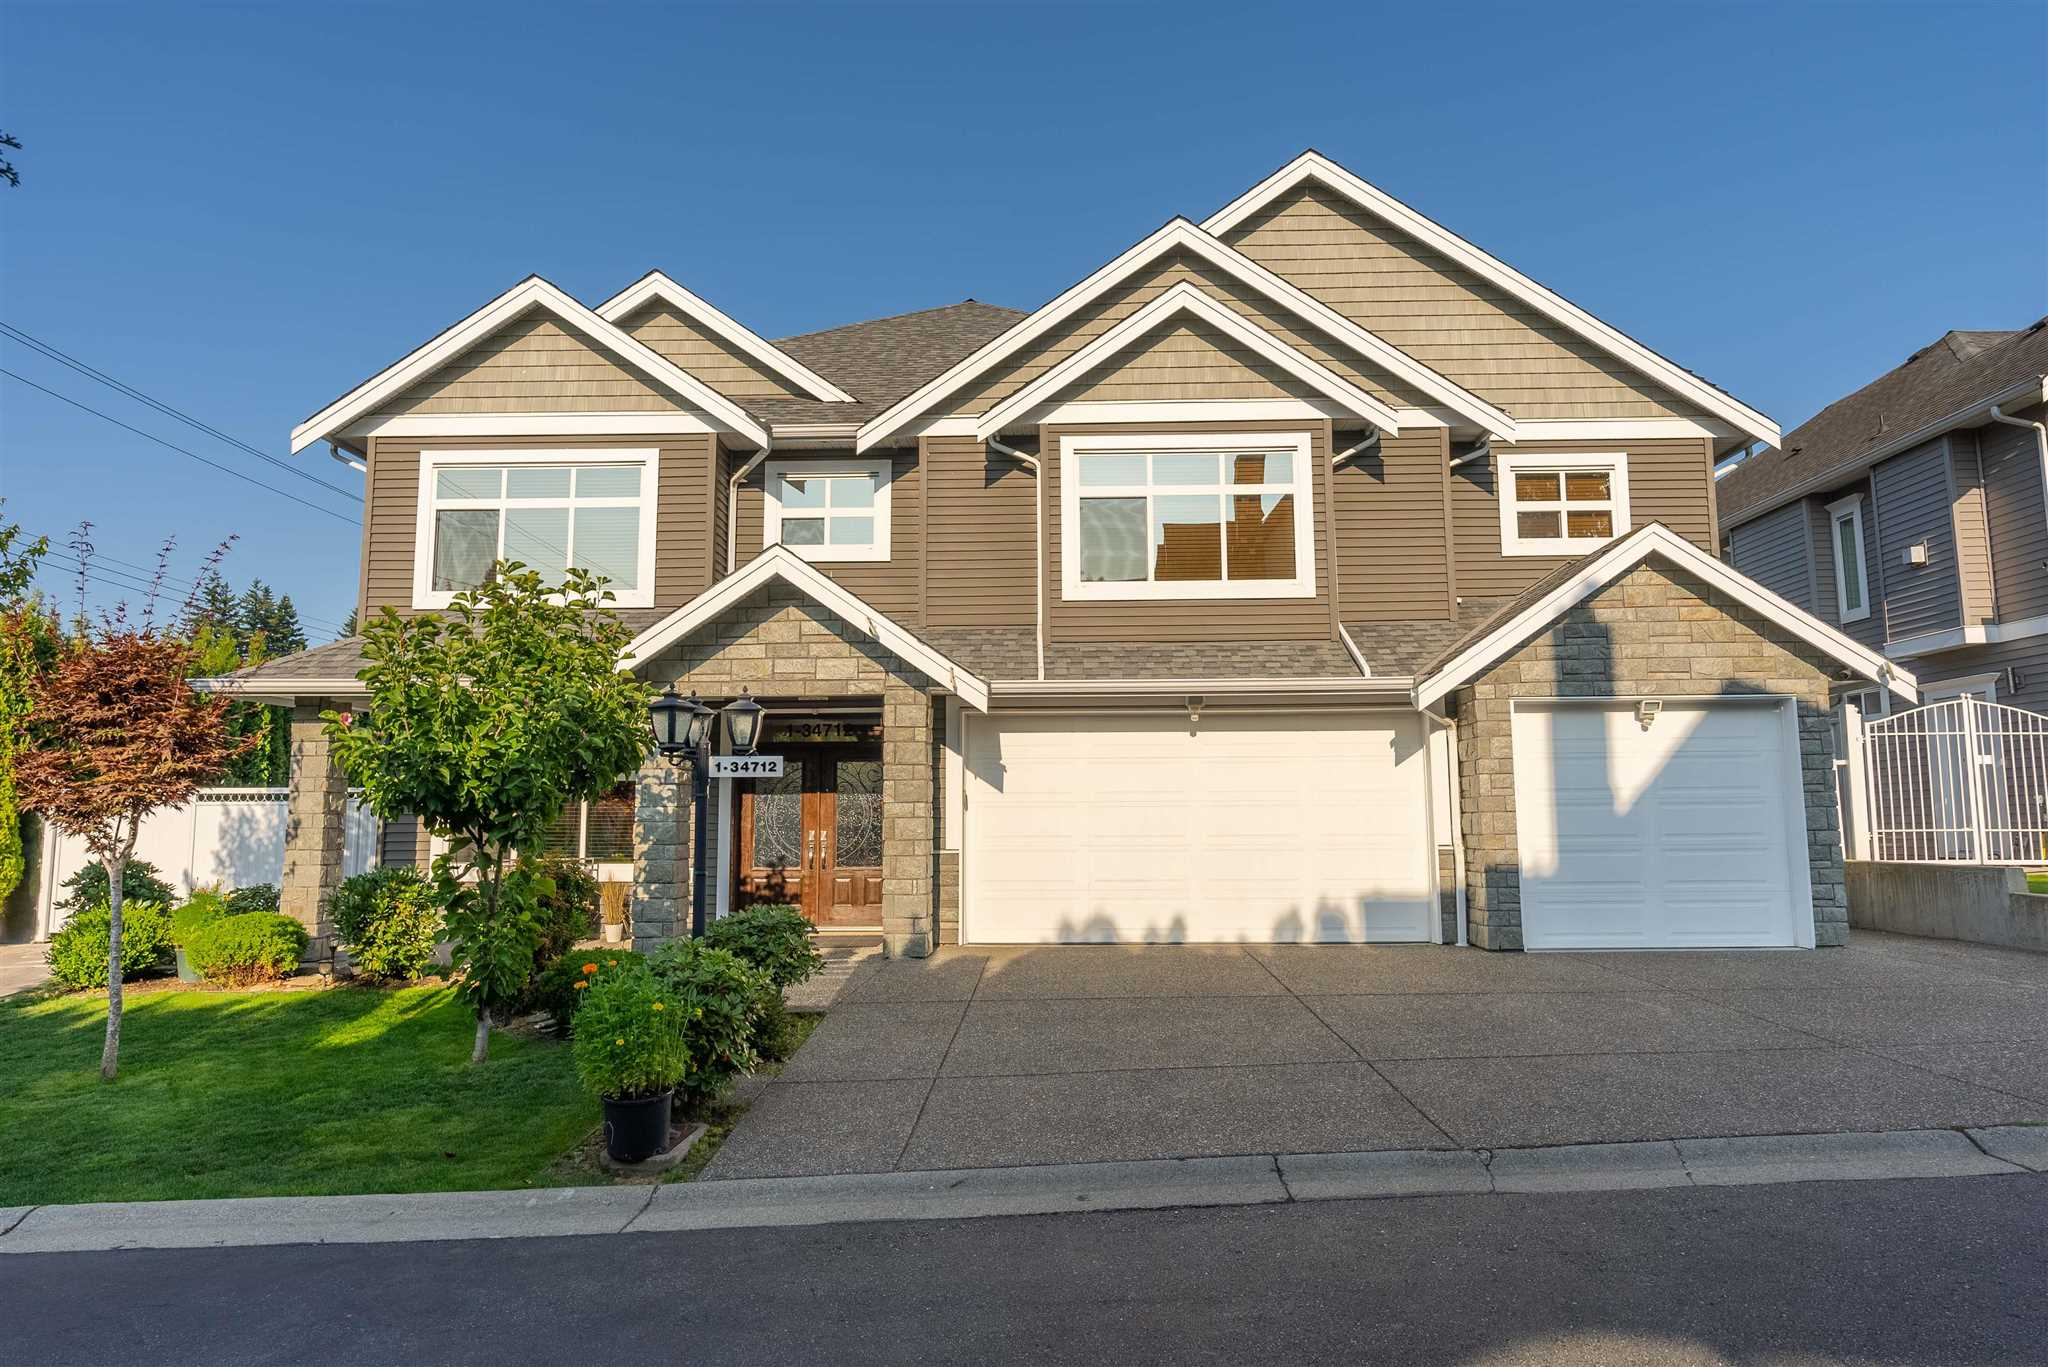 1 34712 MARSHALL ROAD - Abbotsford East House/Single Family for sale, 7 Bedrooms (R2605473) - #1